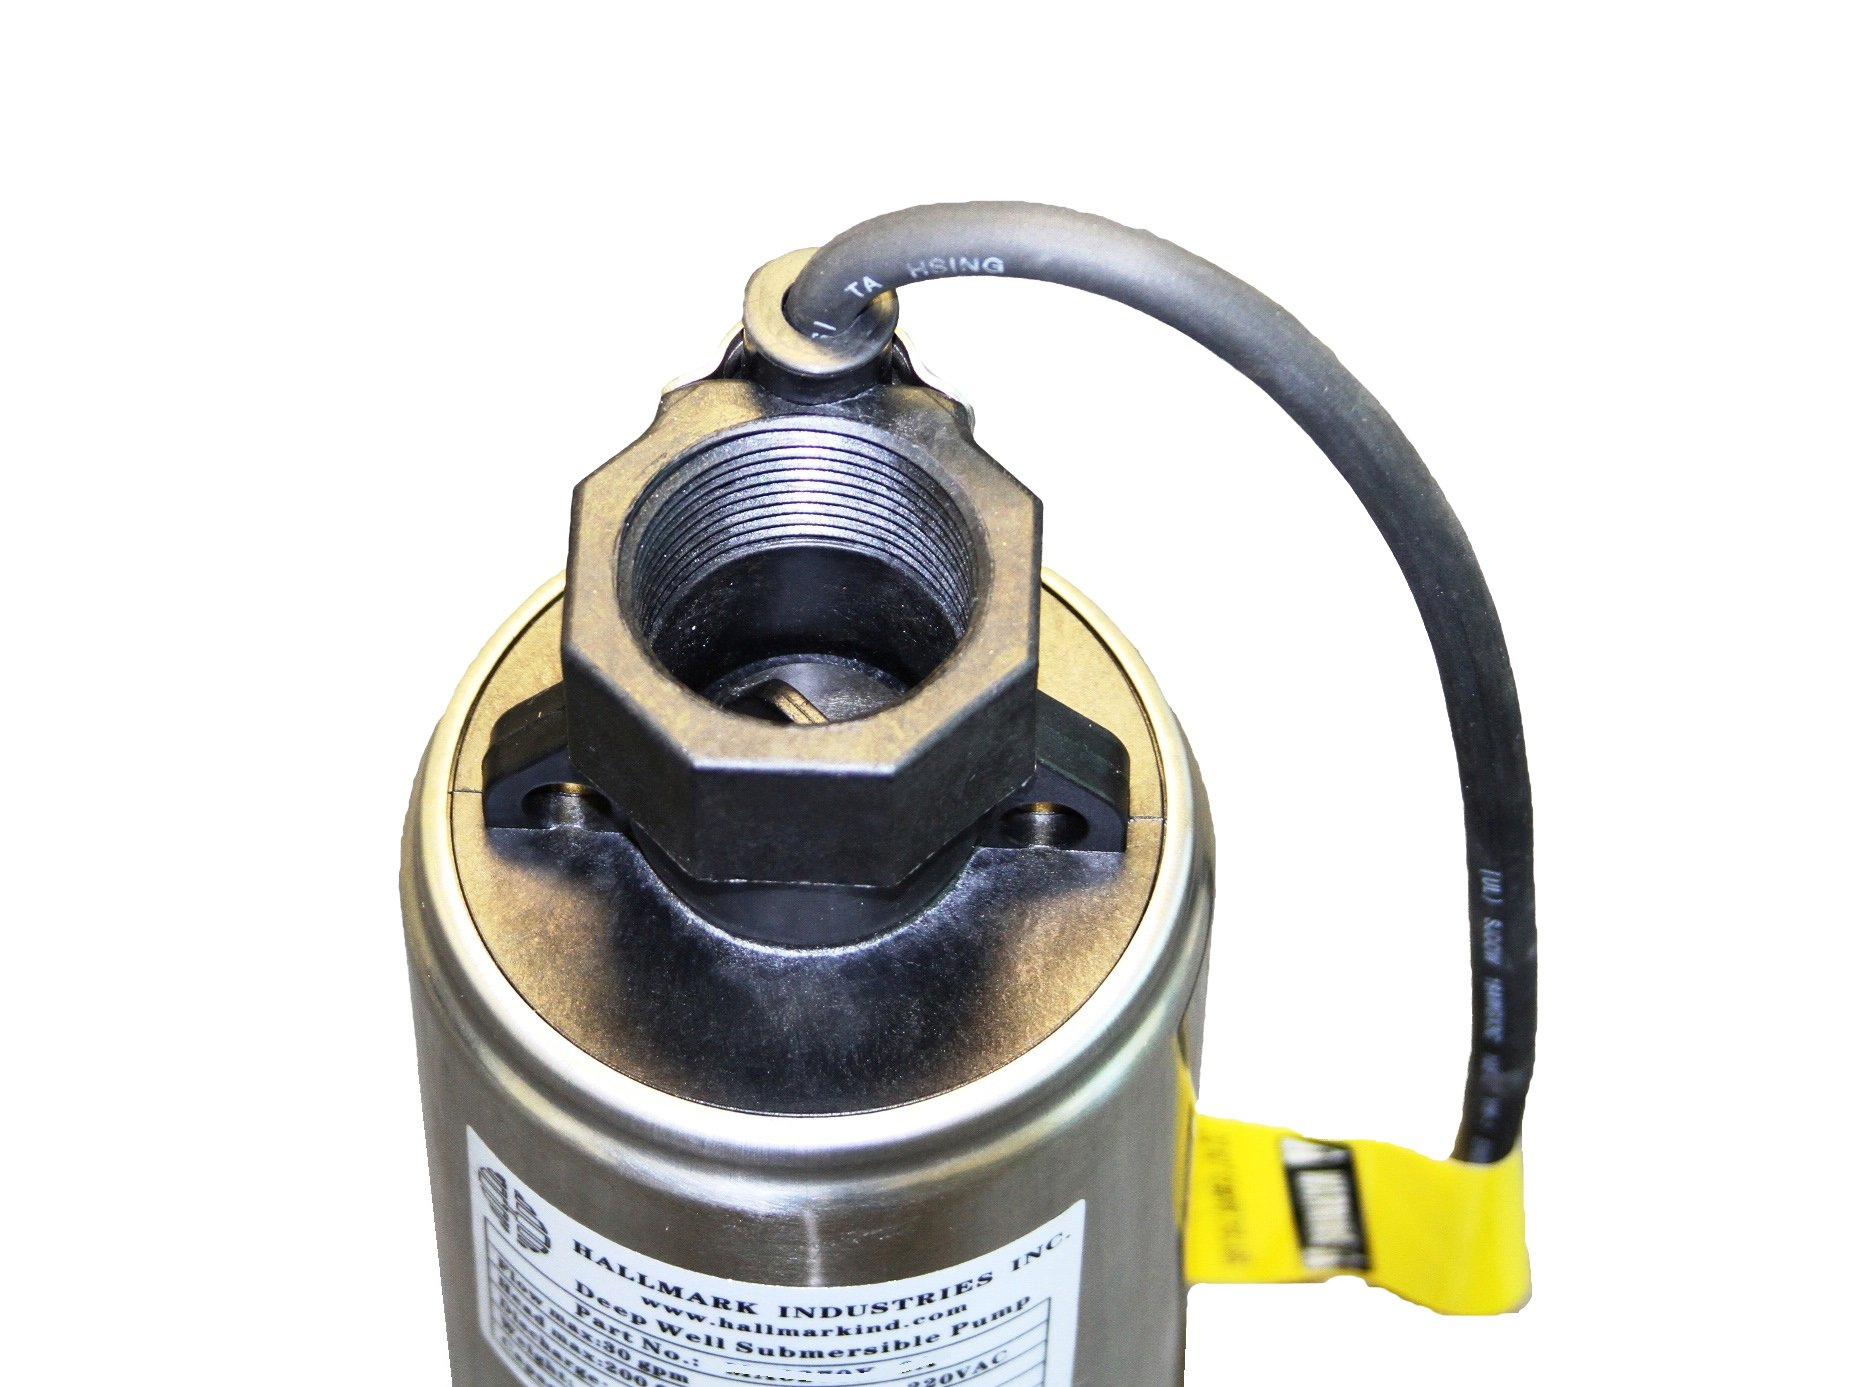 Hallmark Industries MA0343X-4A Deep Well Submersible Pump, 1/2 hp, 230V, 60 Hz, 25 GPM, 150' Head, Stainless Steel, 4'' by Hallmark Industries (Image #7)